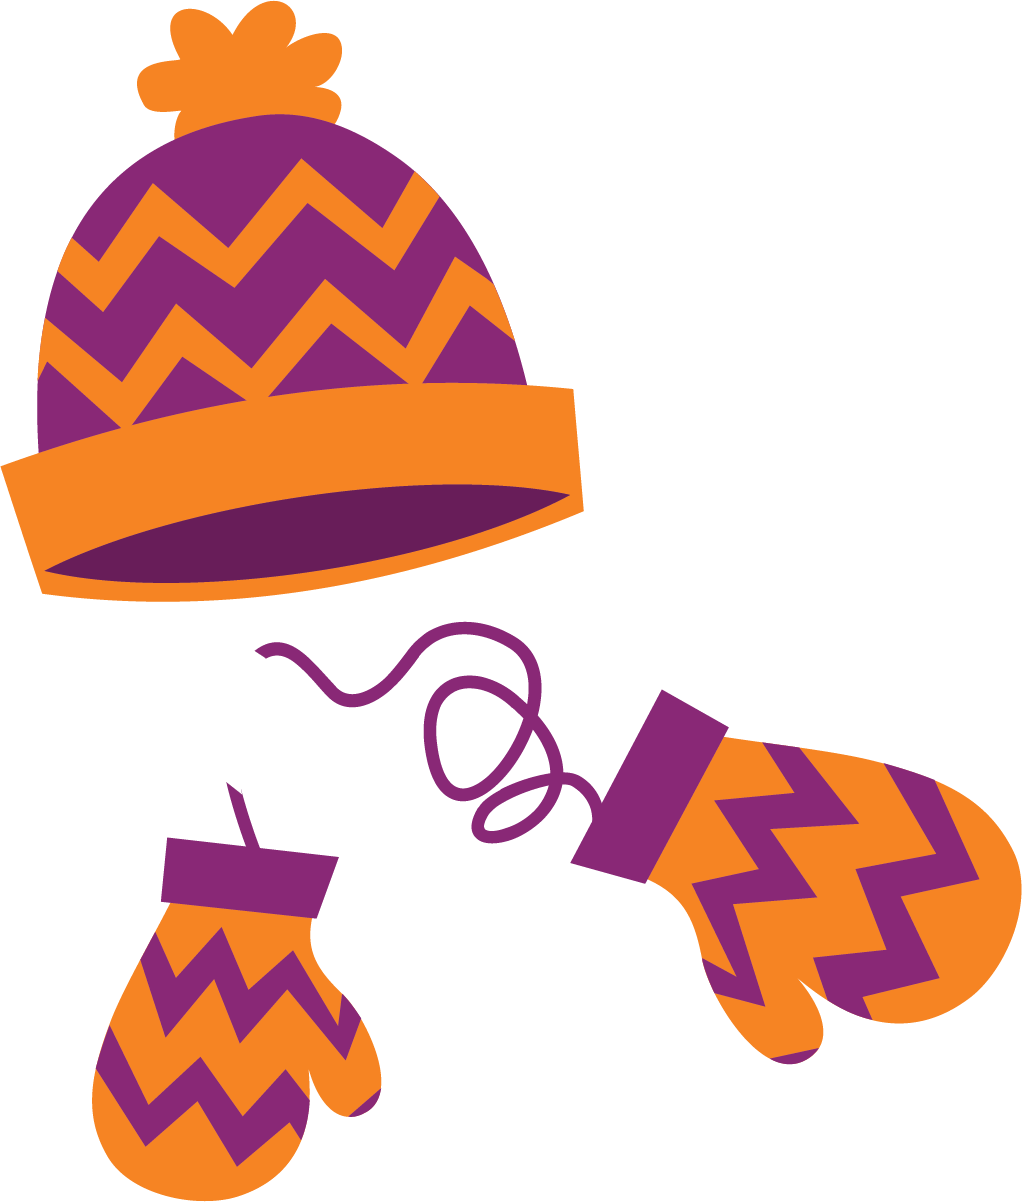 picture freeuse download Mitten clipart orange. Image result for winter.